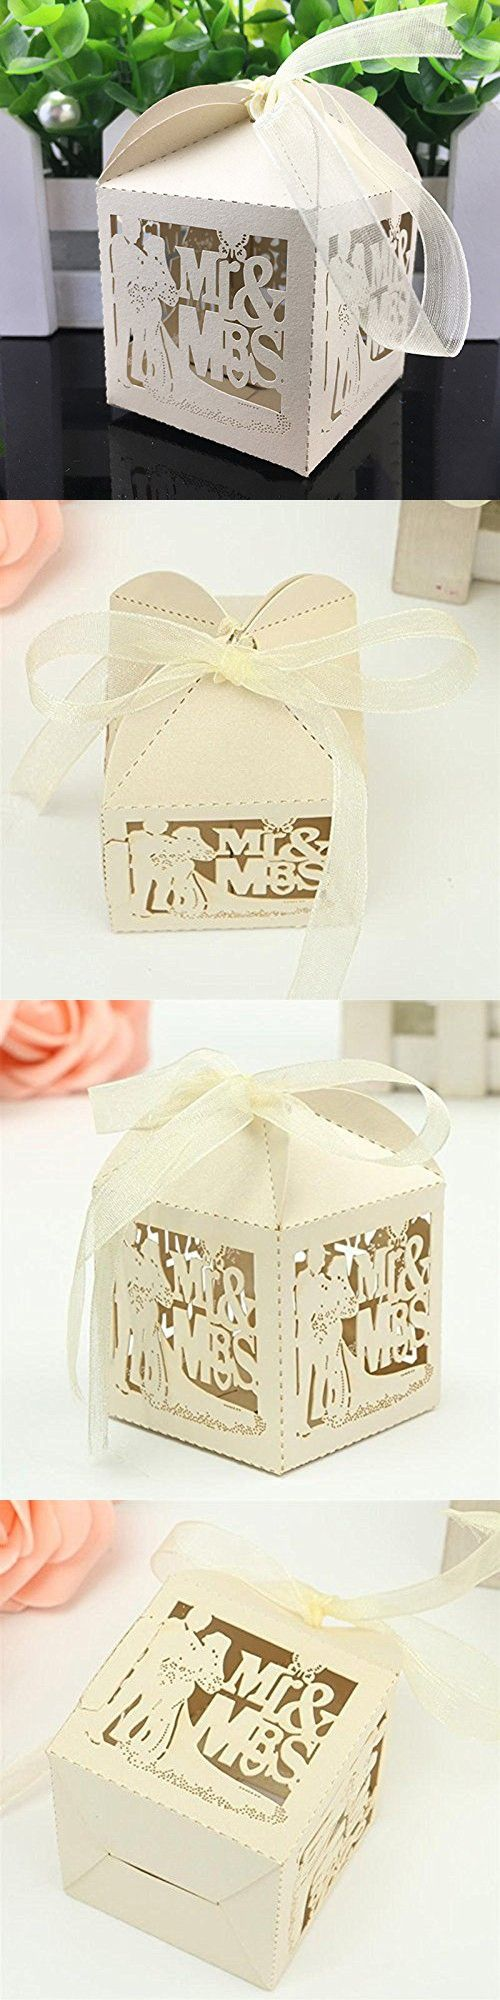 PONATIA 50pcs/Lot Mr & Mrs Wedding Candy Box Sweets Gift Favor Boxes With Ribbon Party Event Decoration (Beige)